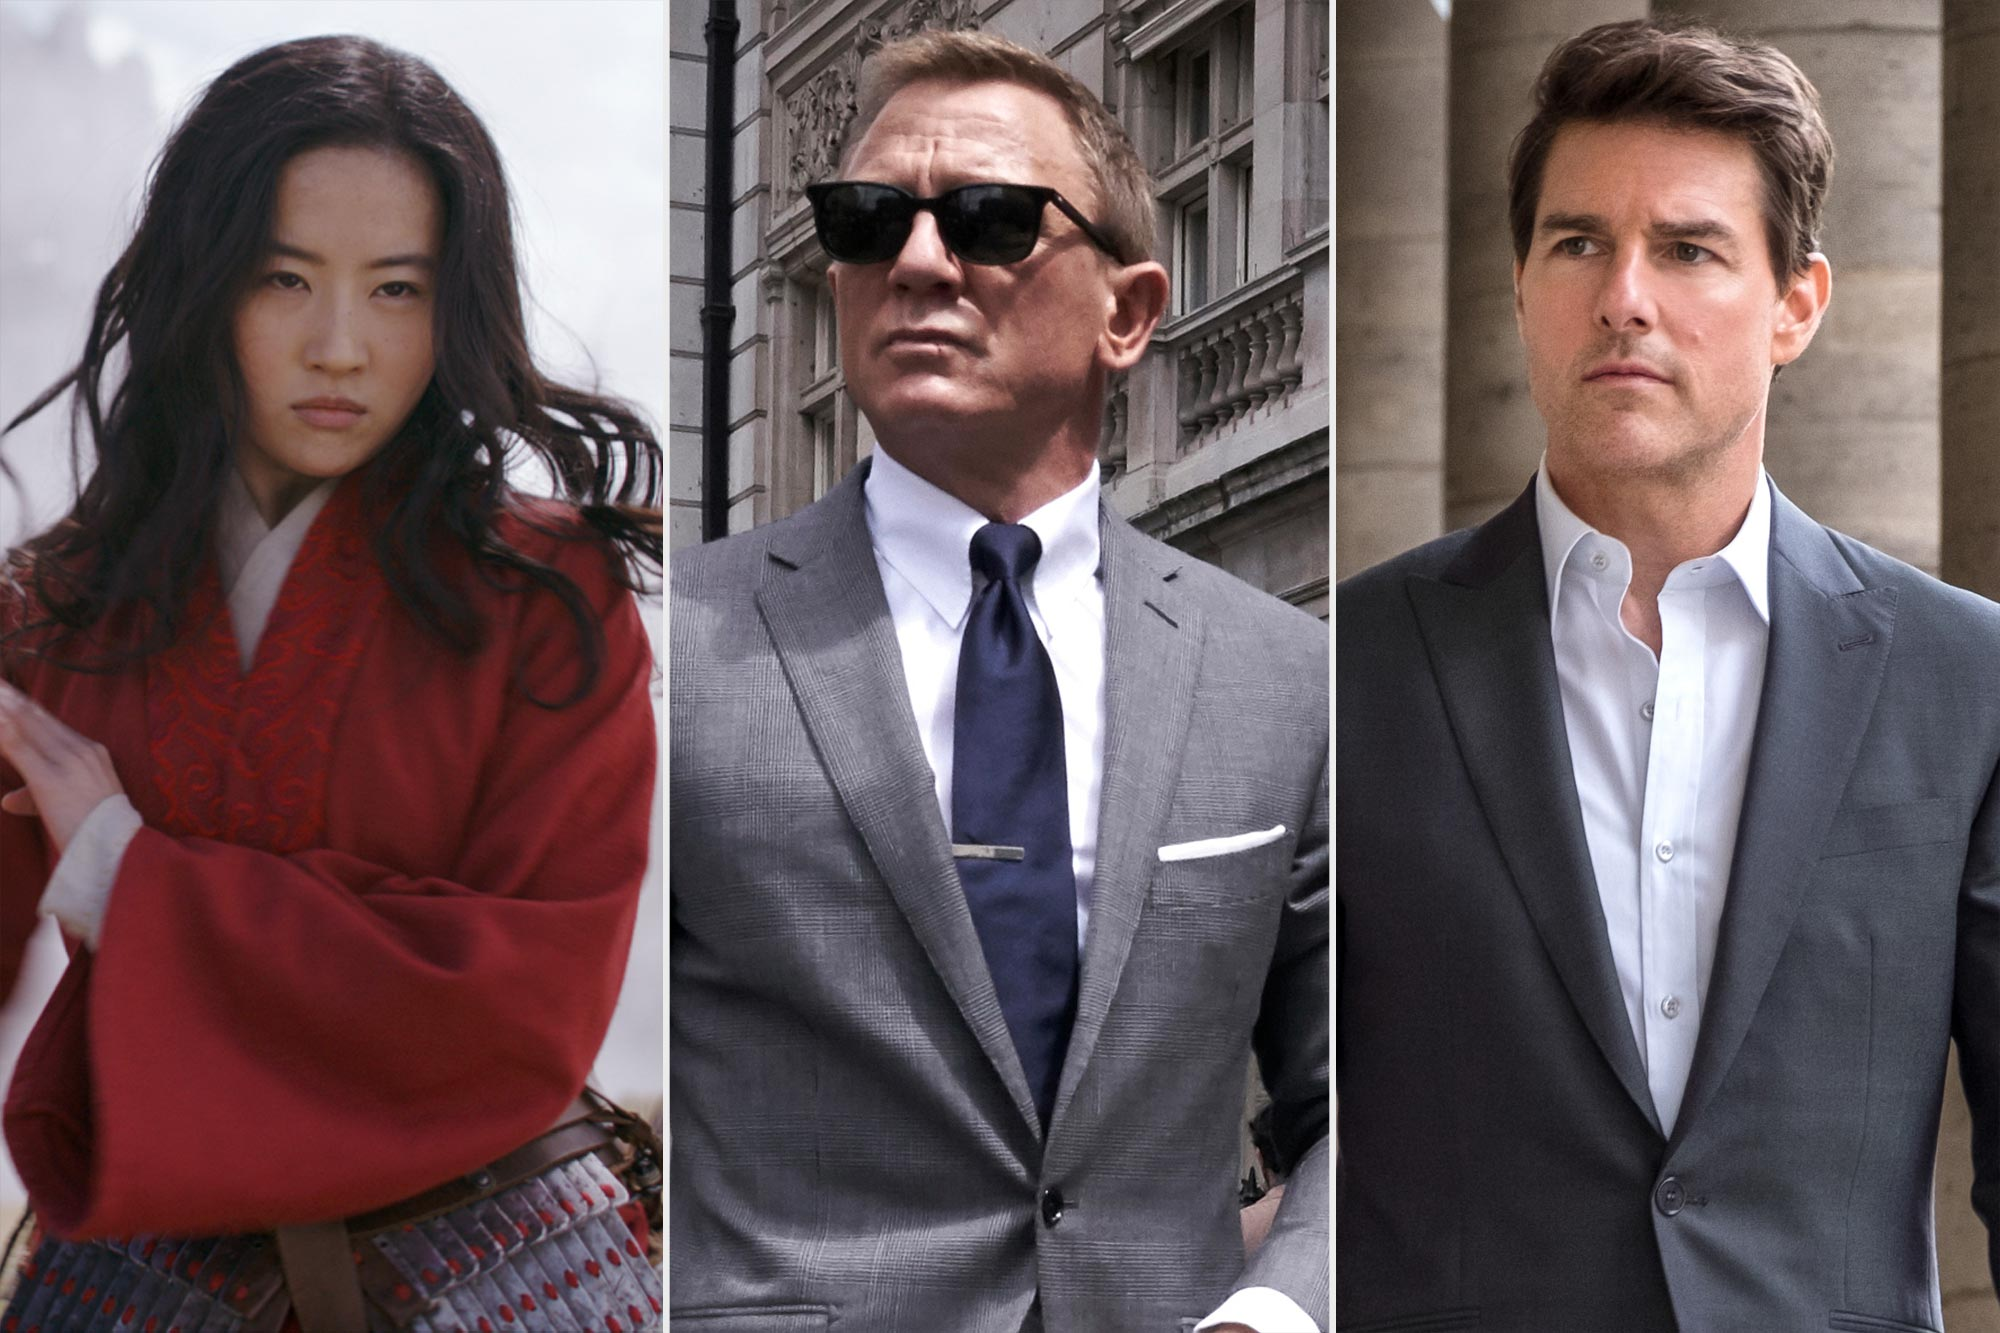 Mulan, Daniel Craig in No Time to Die, and Tom Cruise in Mission: Impossible — Fallout